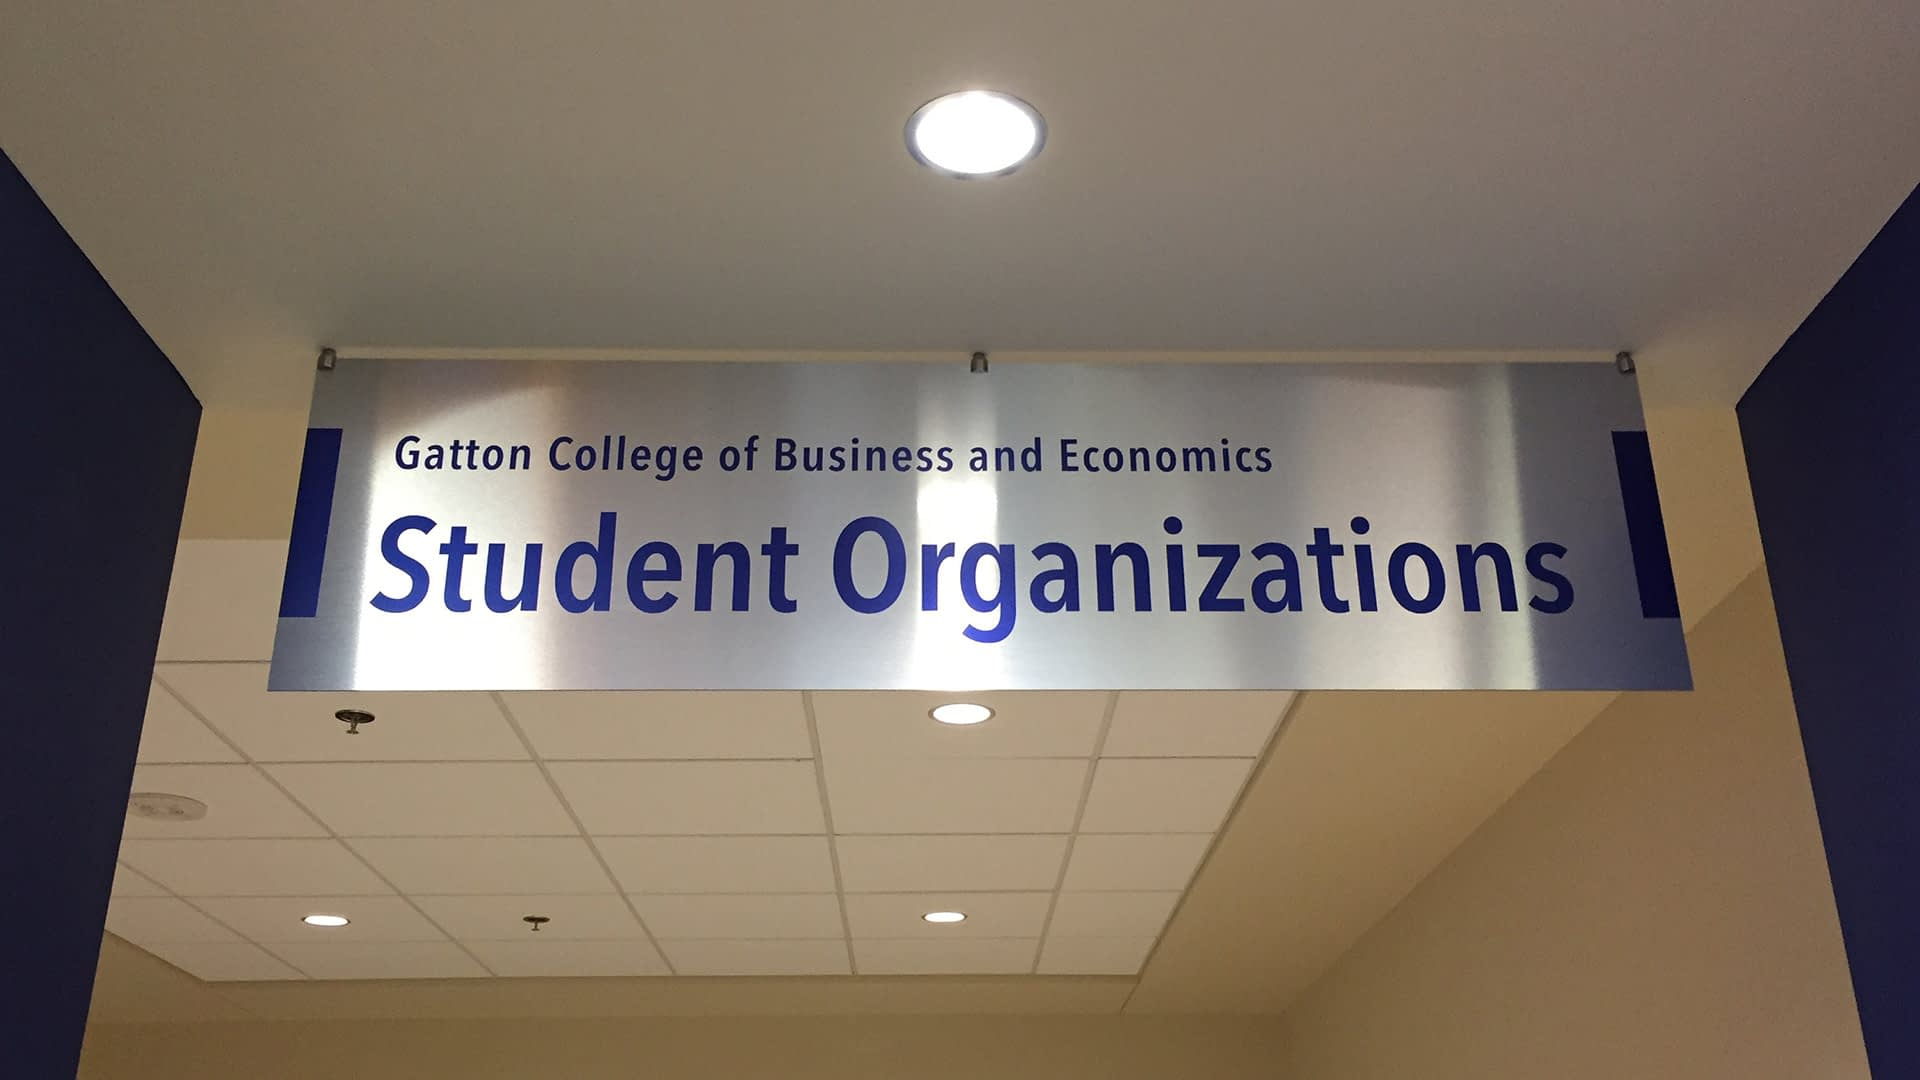 Gatton college student organization banner